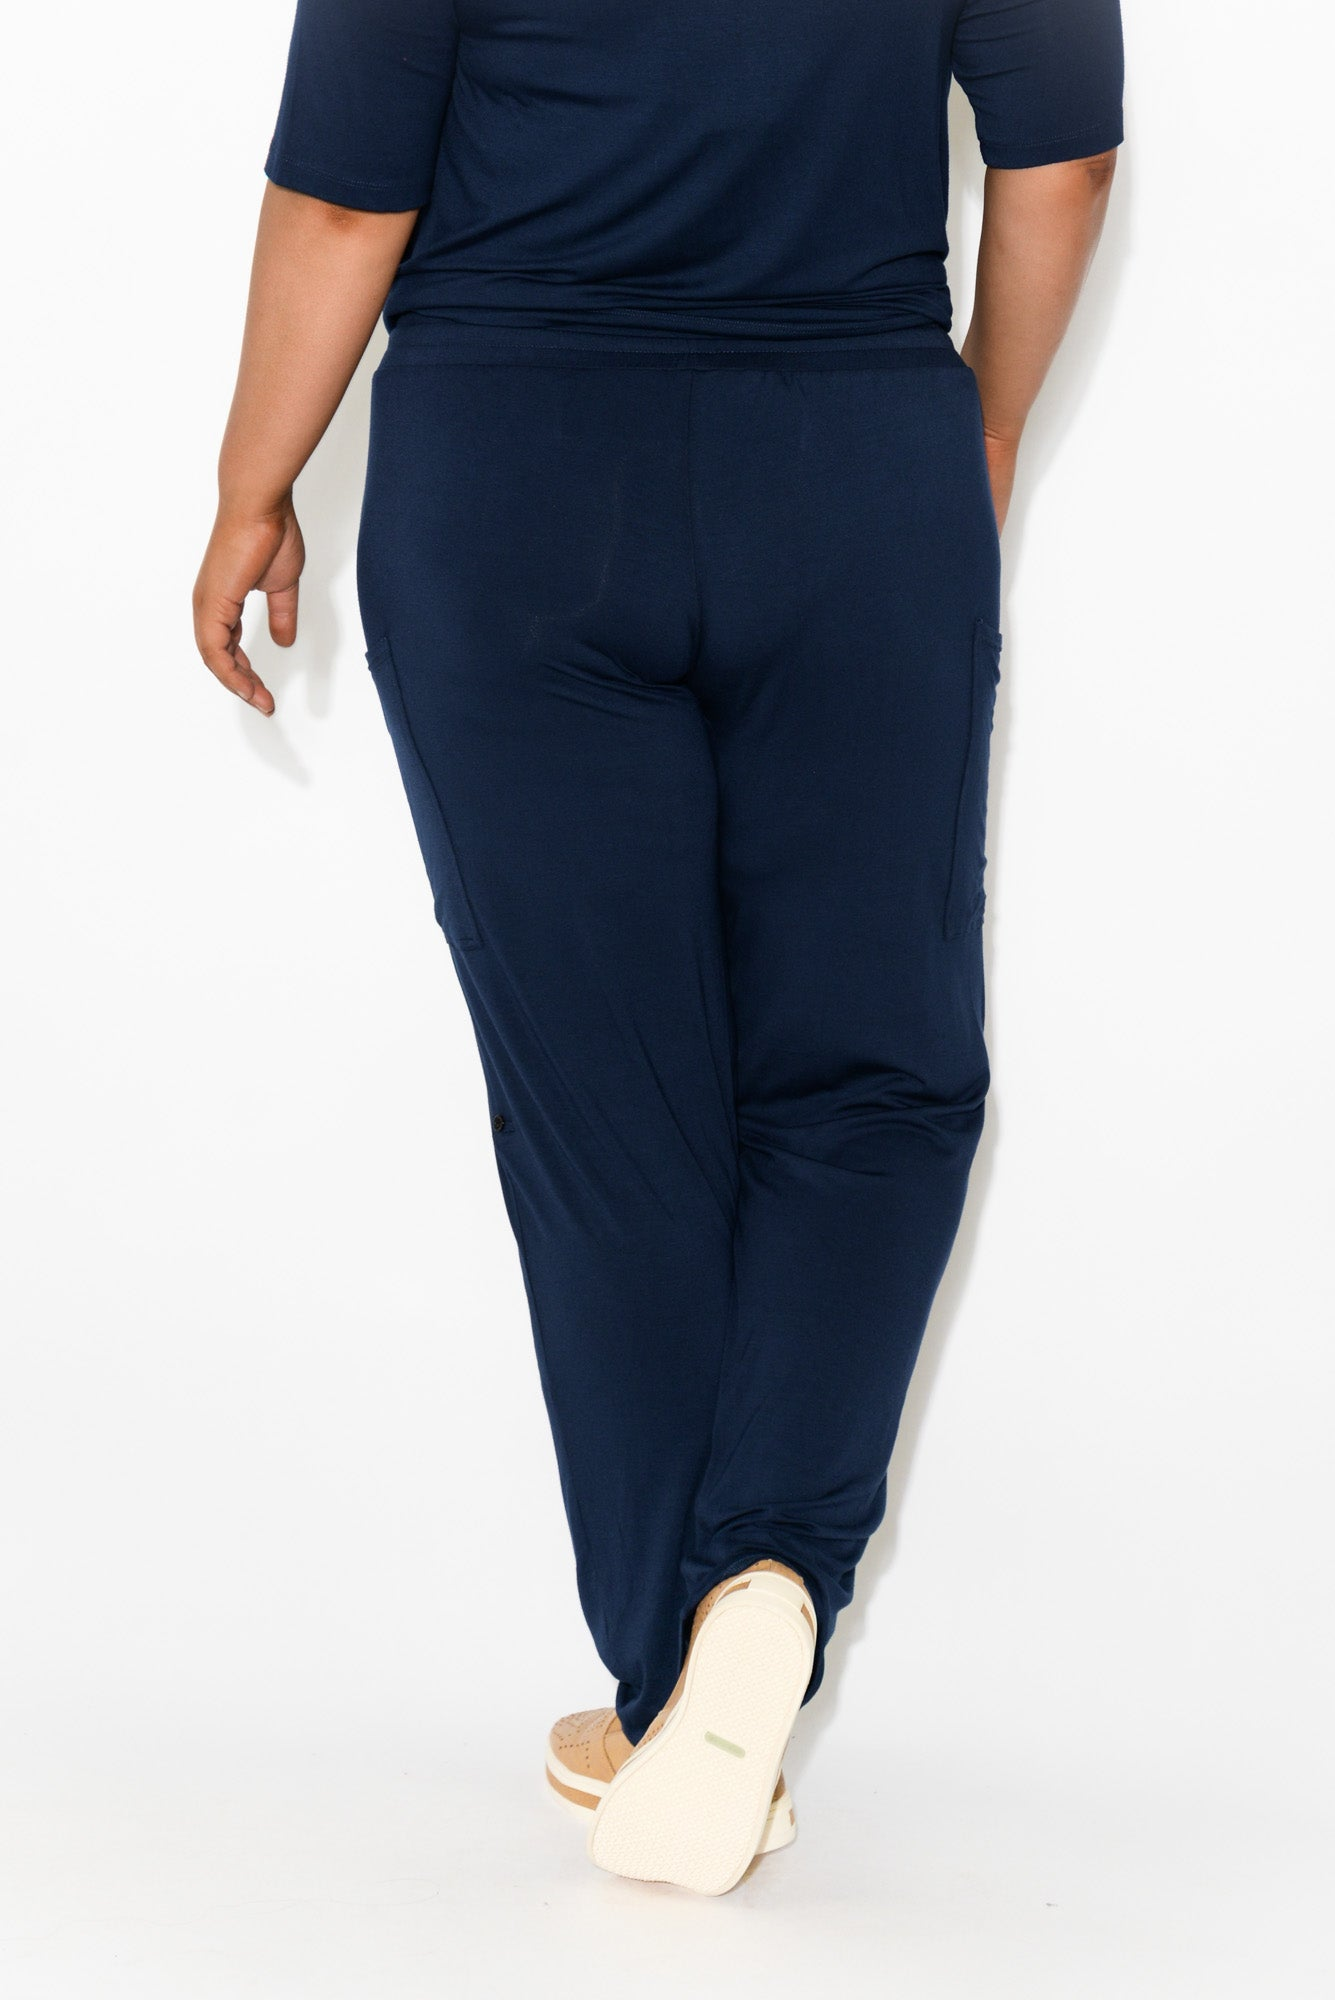 Navy Bamboo Pocket Pant